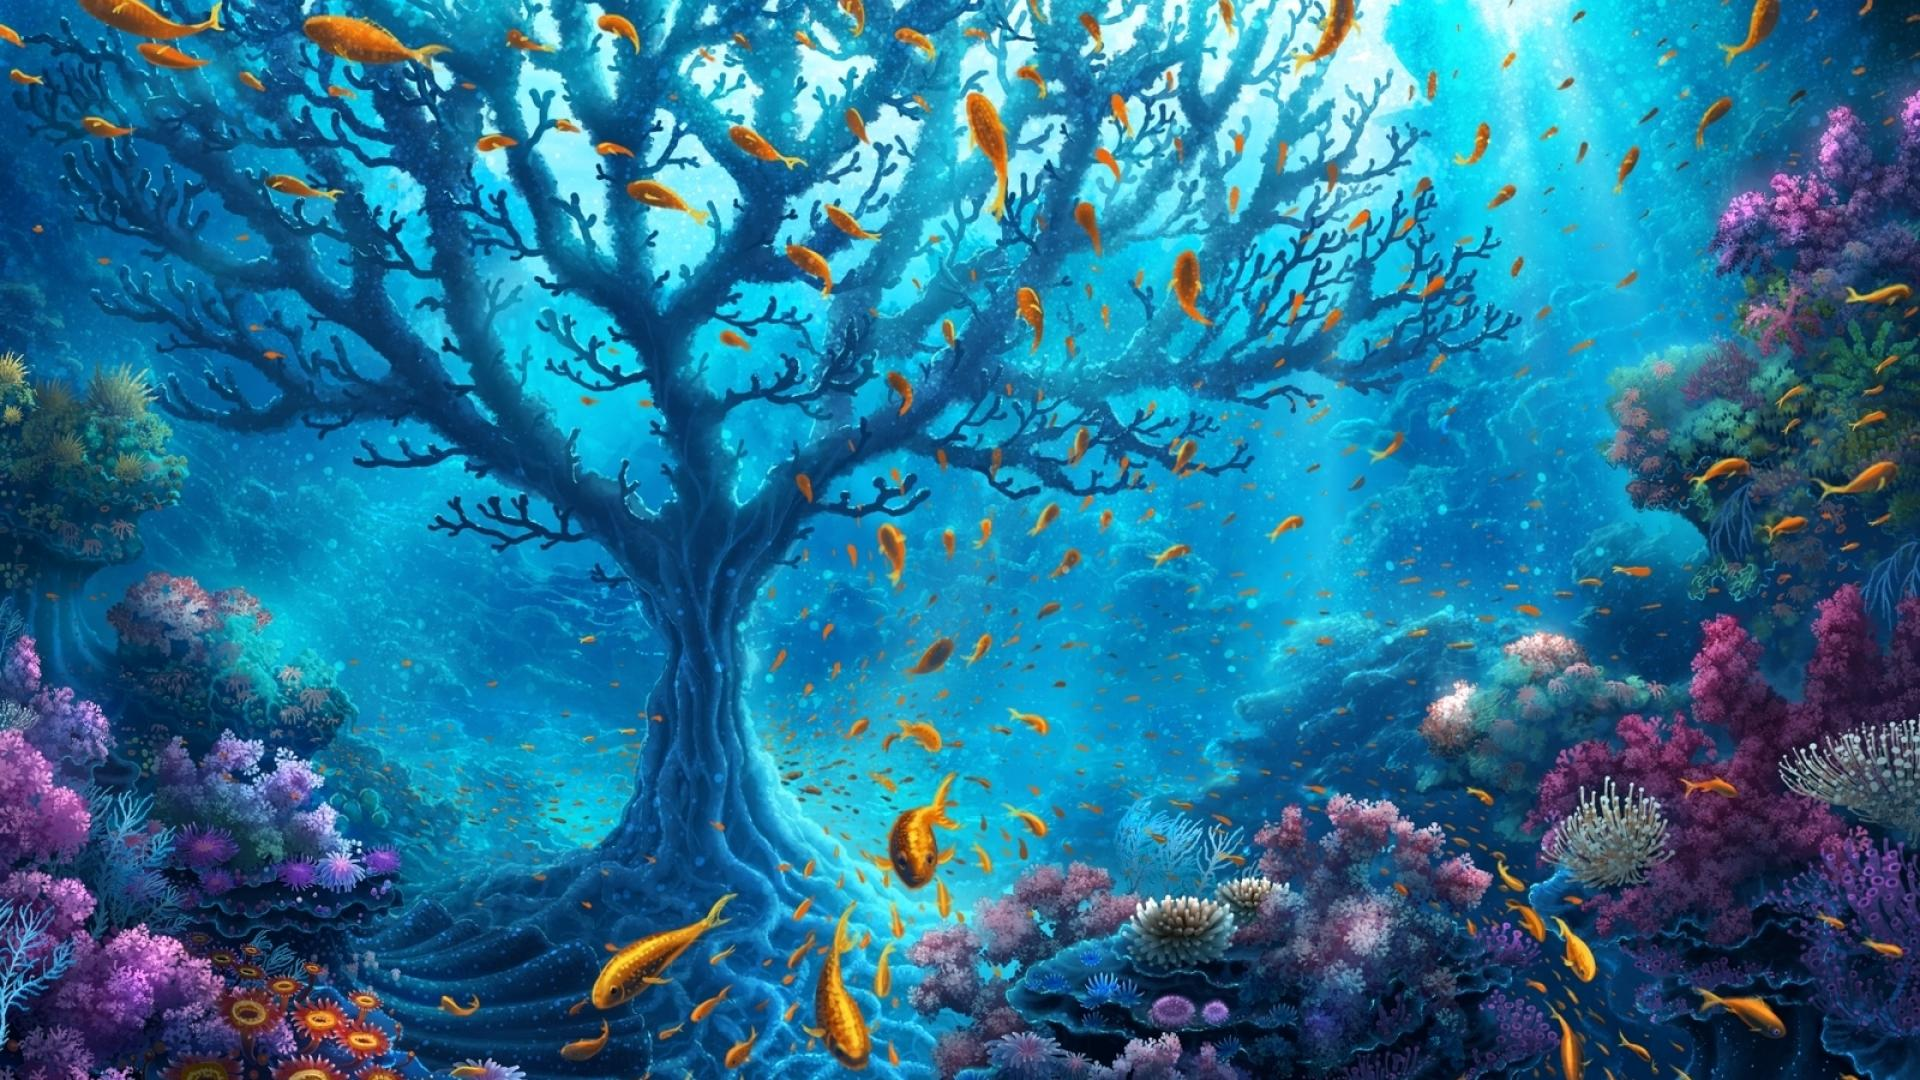 1920x1080 Underwater World Fantasy desktop PC and Mac wallpaper